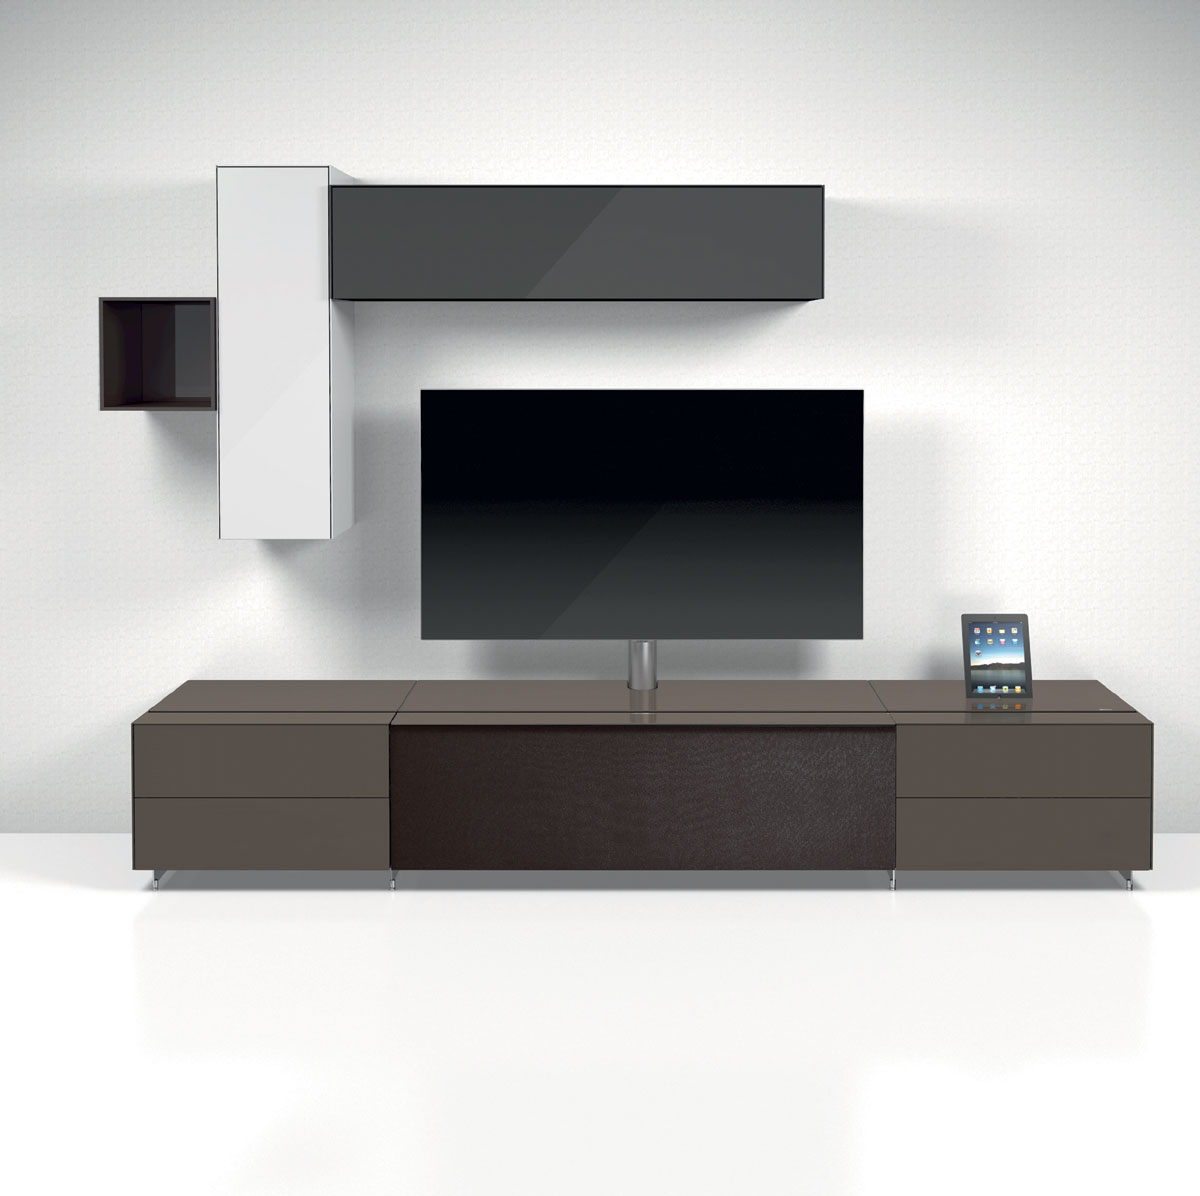 tv m bel archive seite 2 von 3 tv m bel und hifi m bel guide. Black Bedroom Furniture Sets. Home Design Ideas